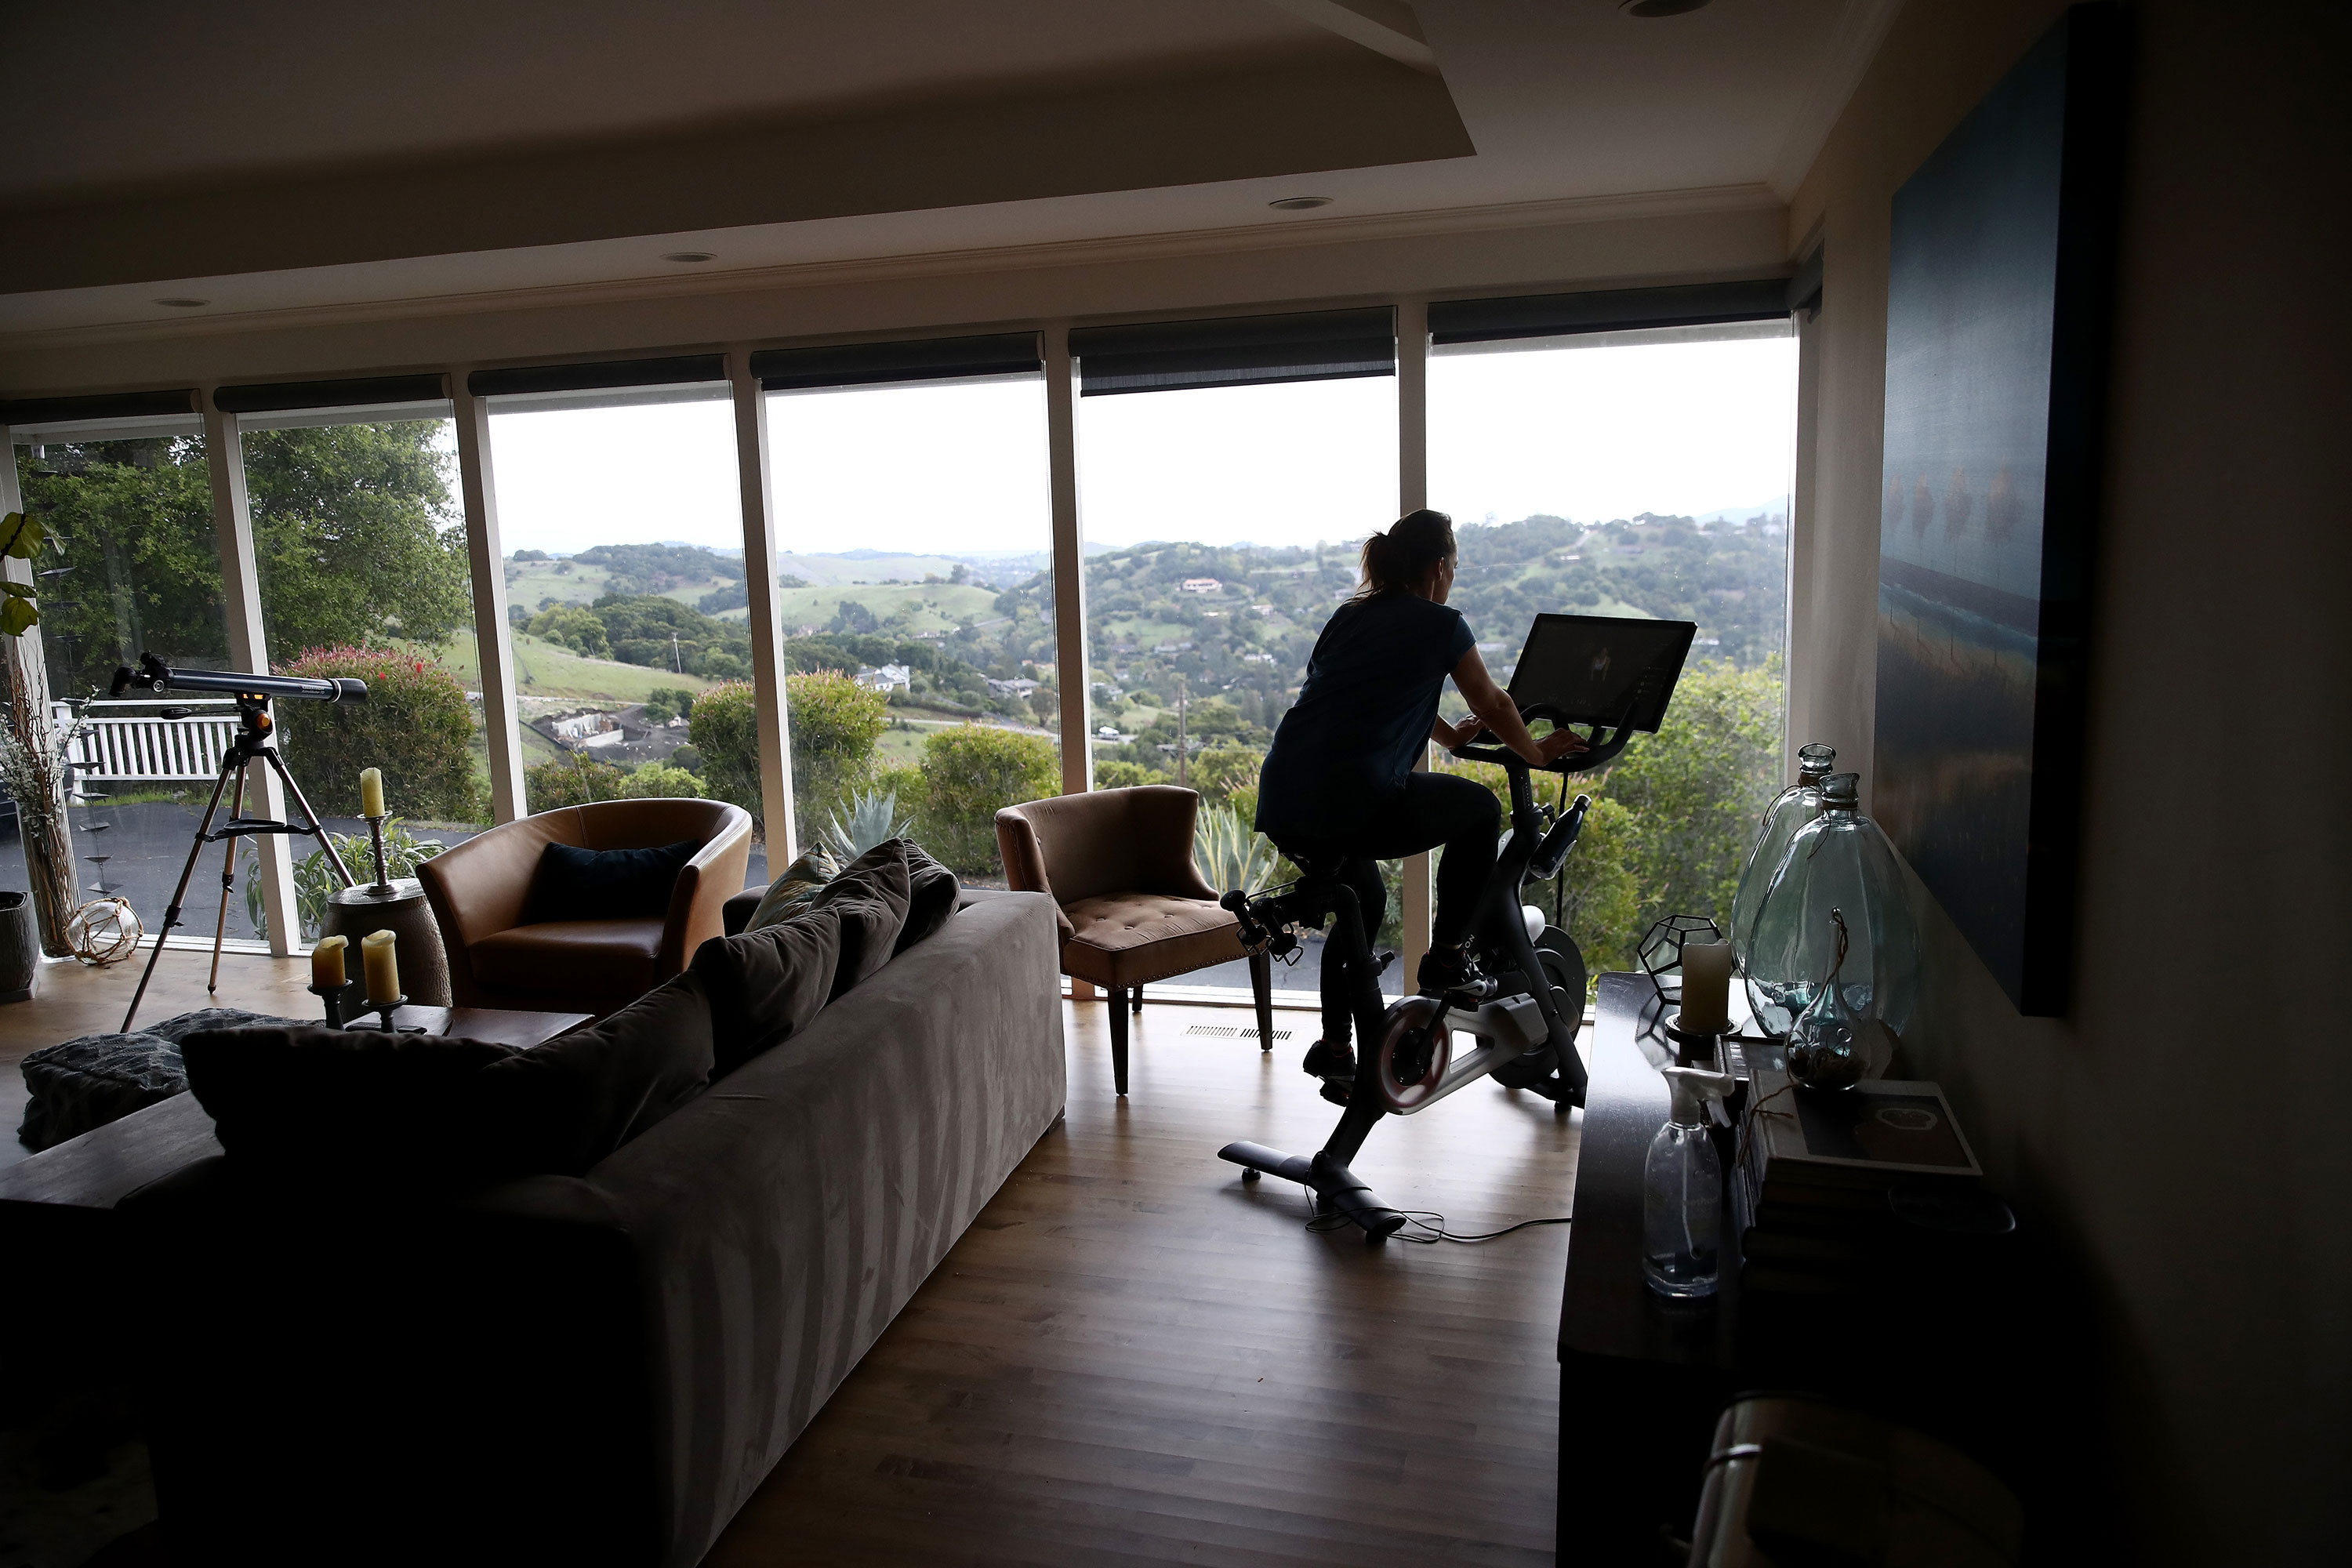 Becky Friese Rodskog rides her Peloton exercise bike at her home on April 6 in San Anselmo, California.